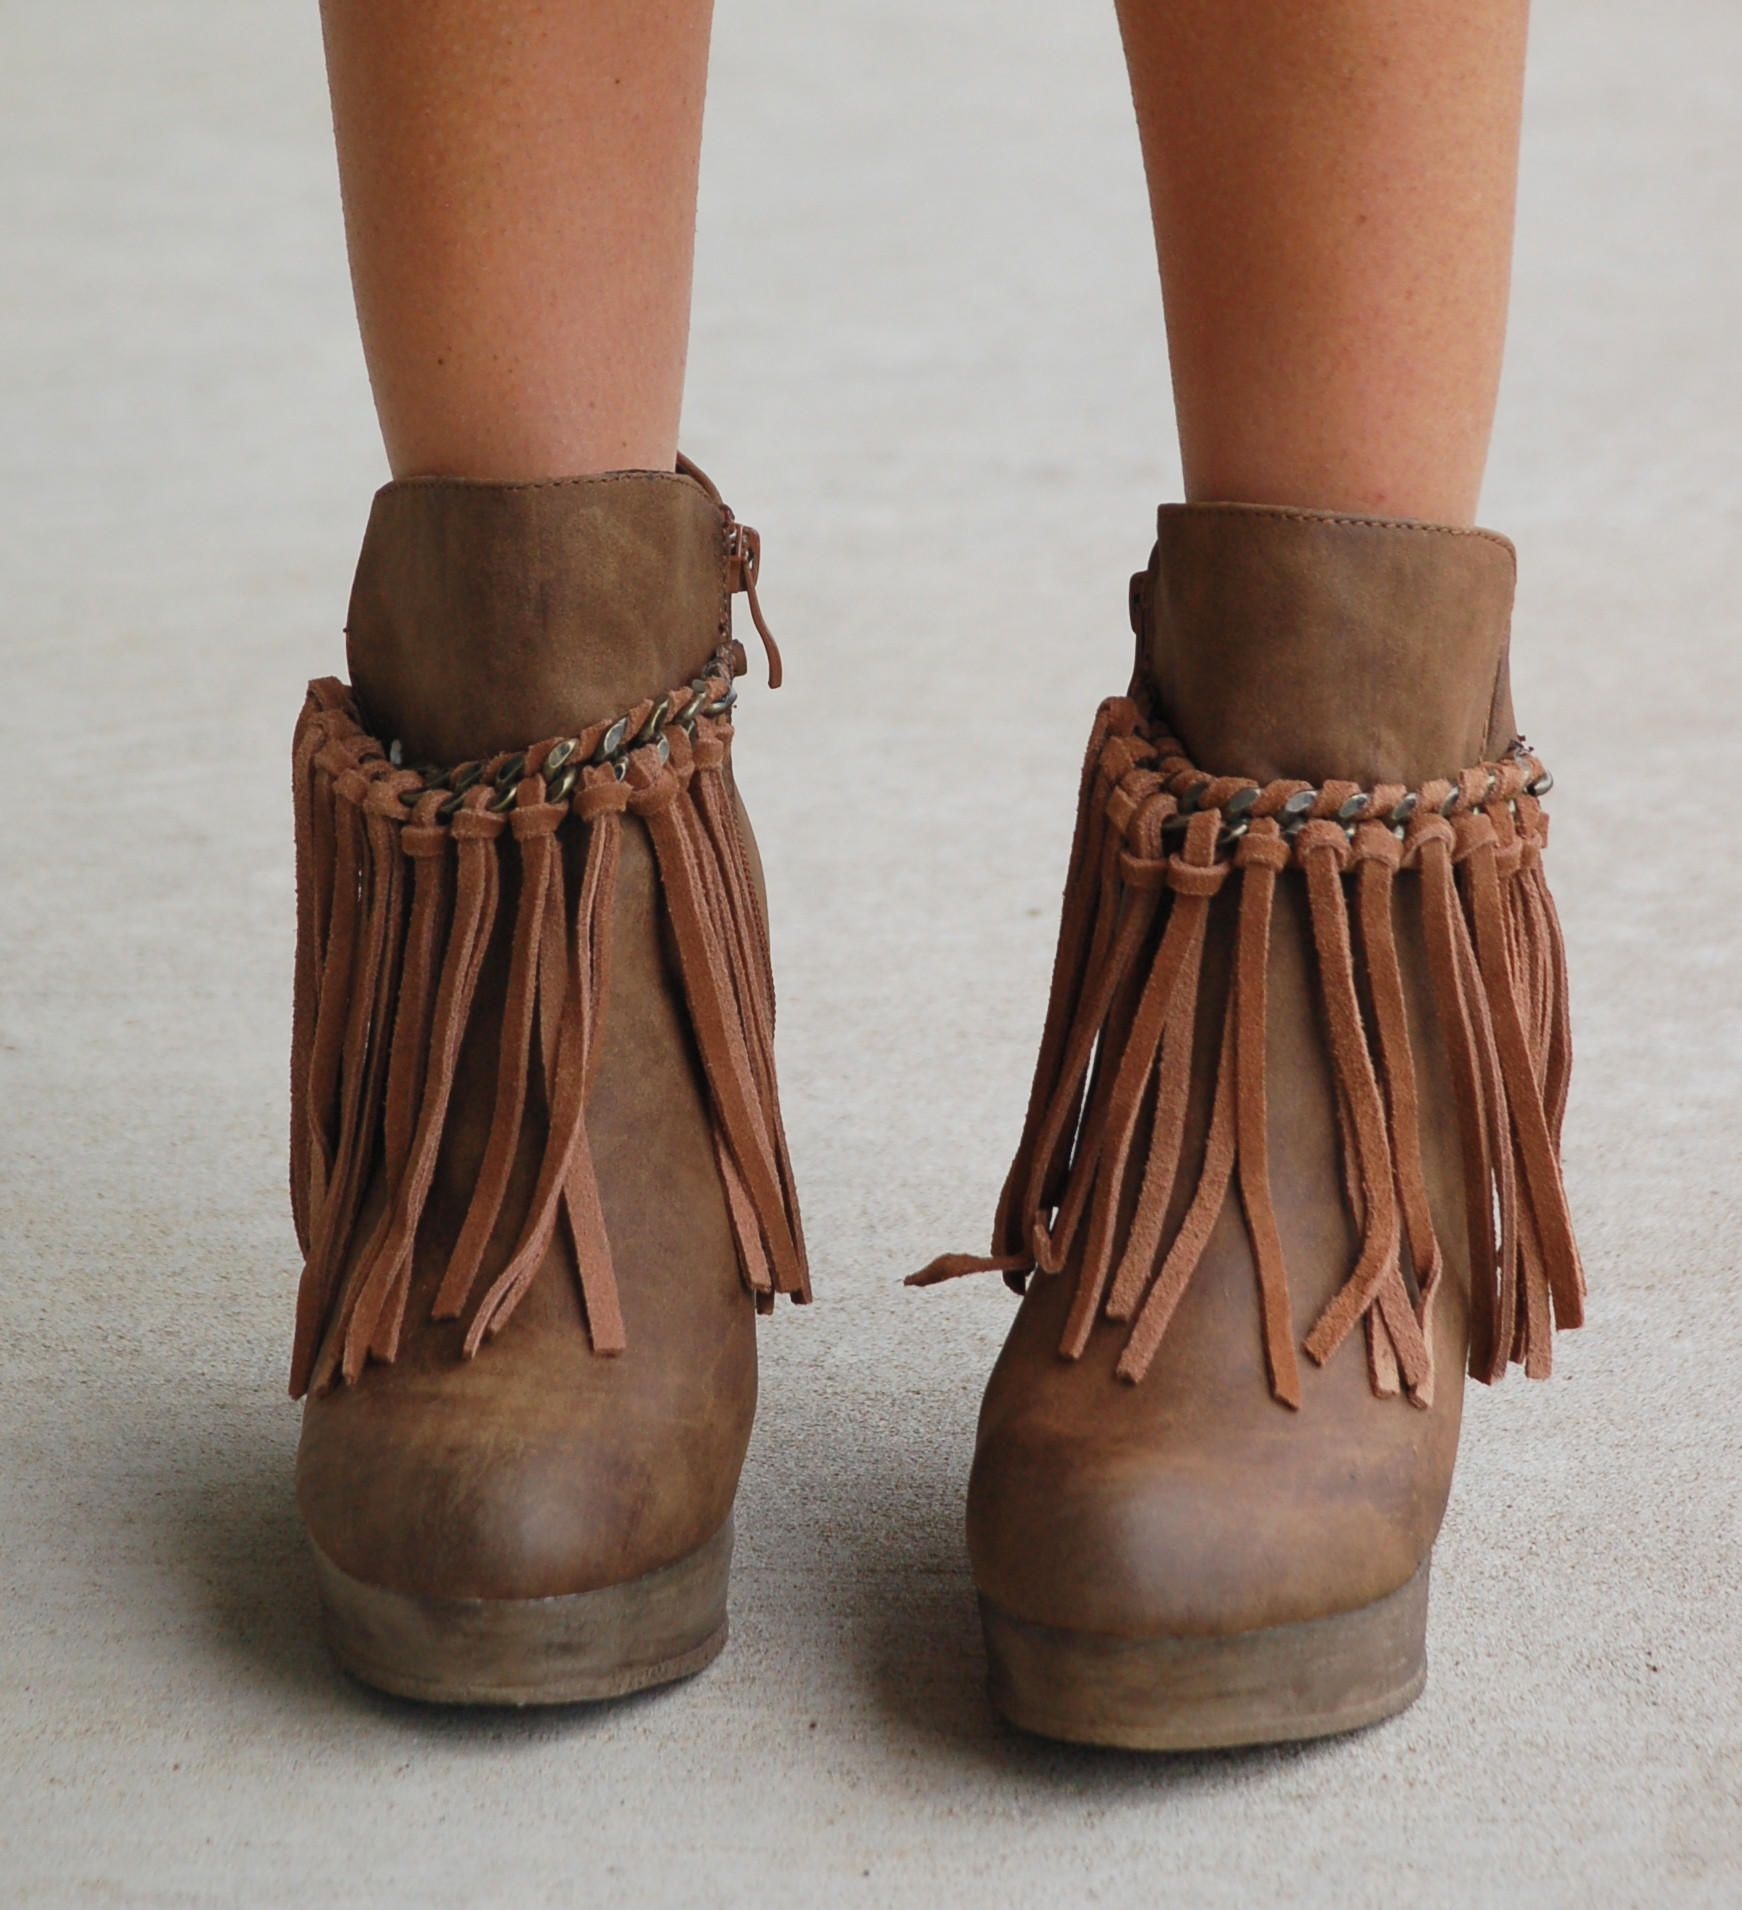 727973528e6 Fringe Zepp Wedge Bootie - Taupe from ShopbellaC. Saved to boots. Shop more  products from ShopbellaC on Wanelo.